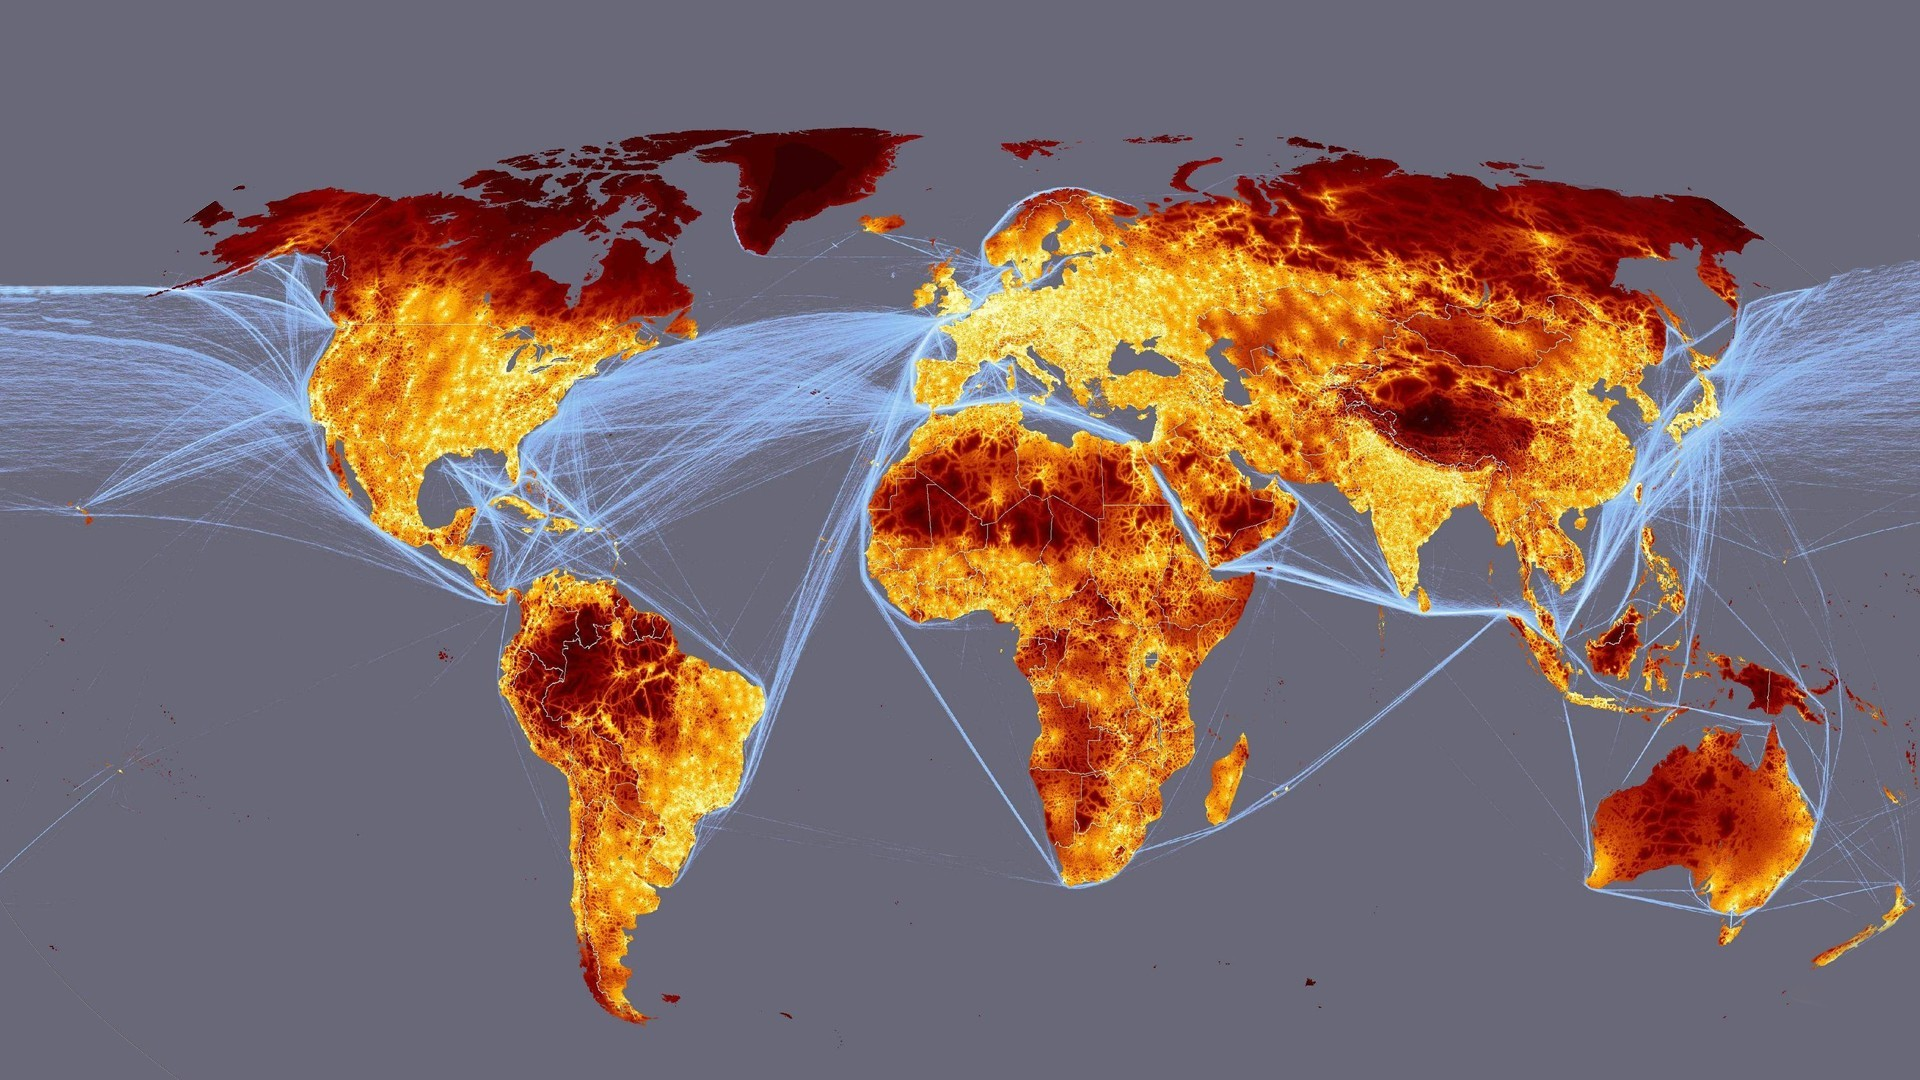 World map wallpapers 66 background pictures 2673x1969 world map wallpaper pinterest fresh world map wallpaper fresh world map wallpaper pinterest fresh world map desktop background gumiabroncs Image collections